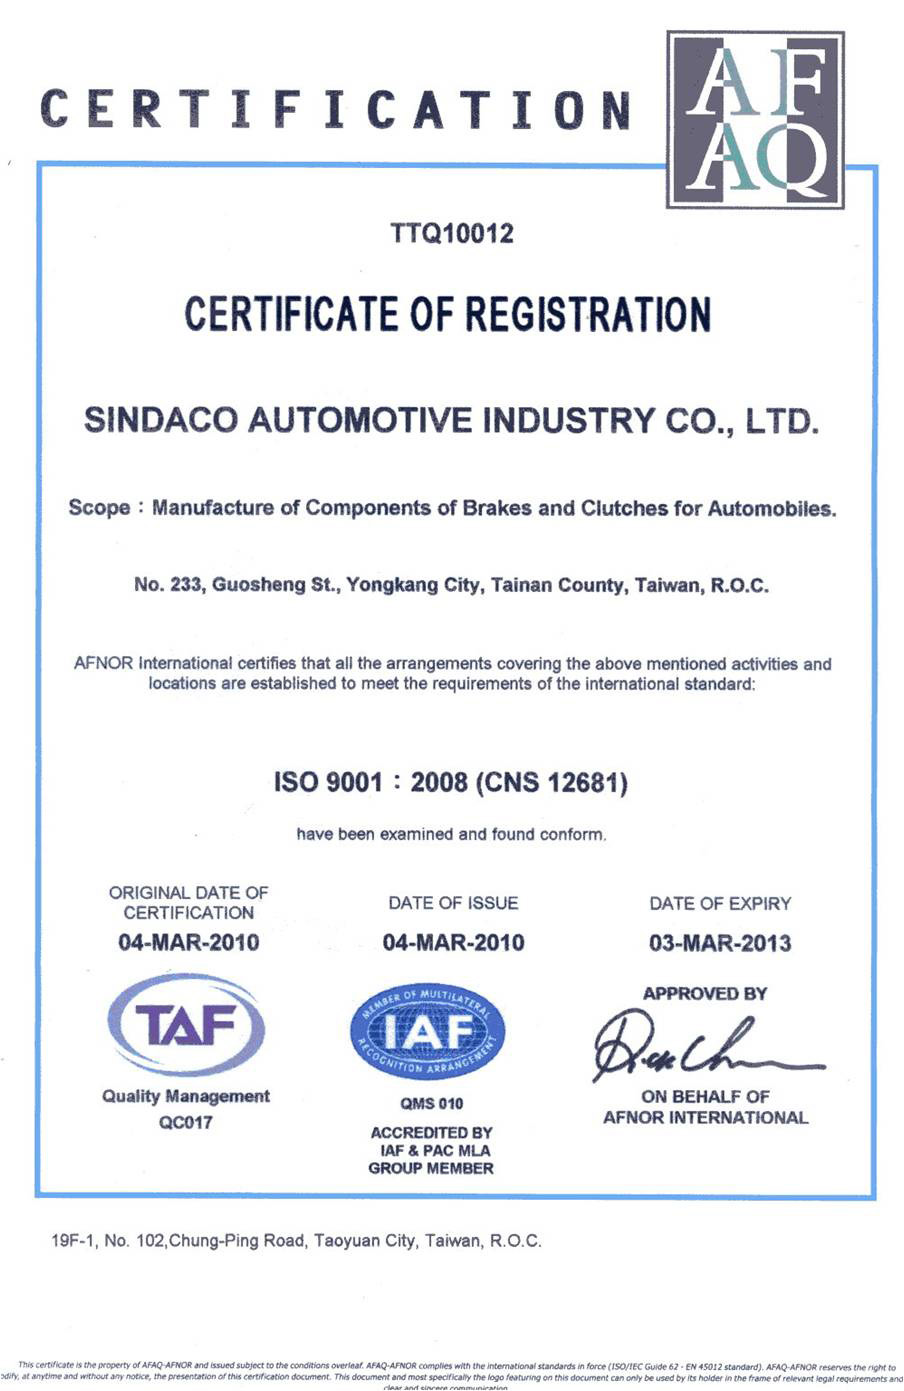 Sindaco automotive industry co ltd our motto there is a better way quality is the first the best salesman is good quality yadclub